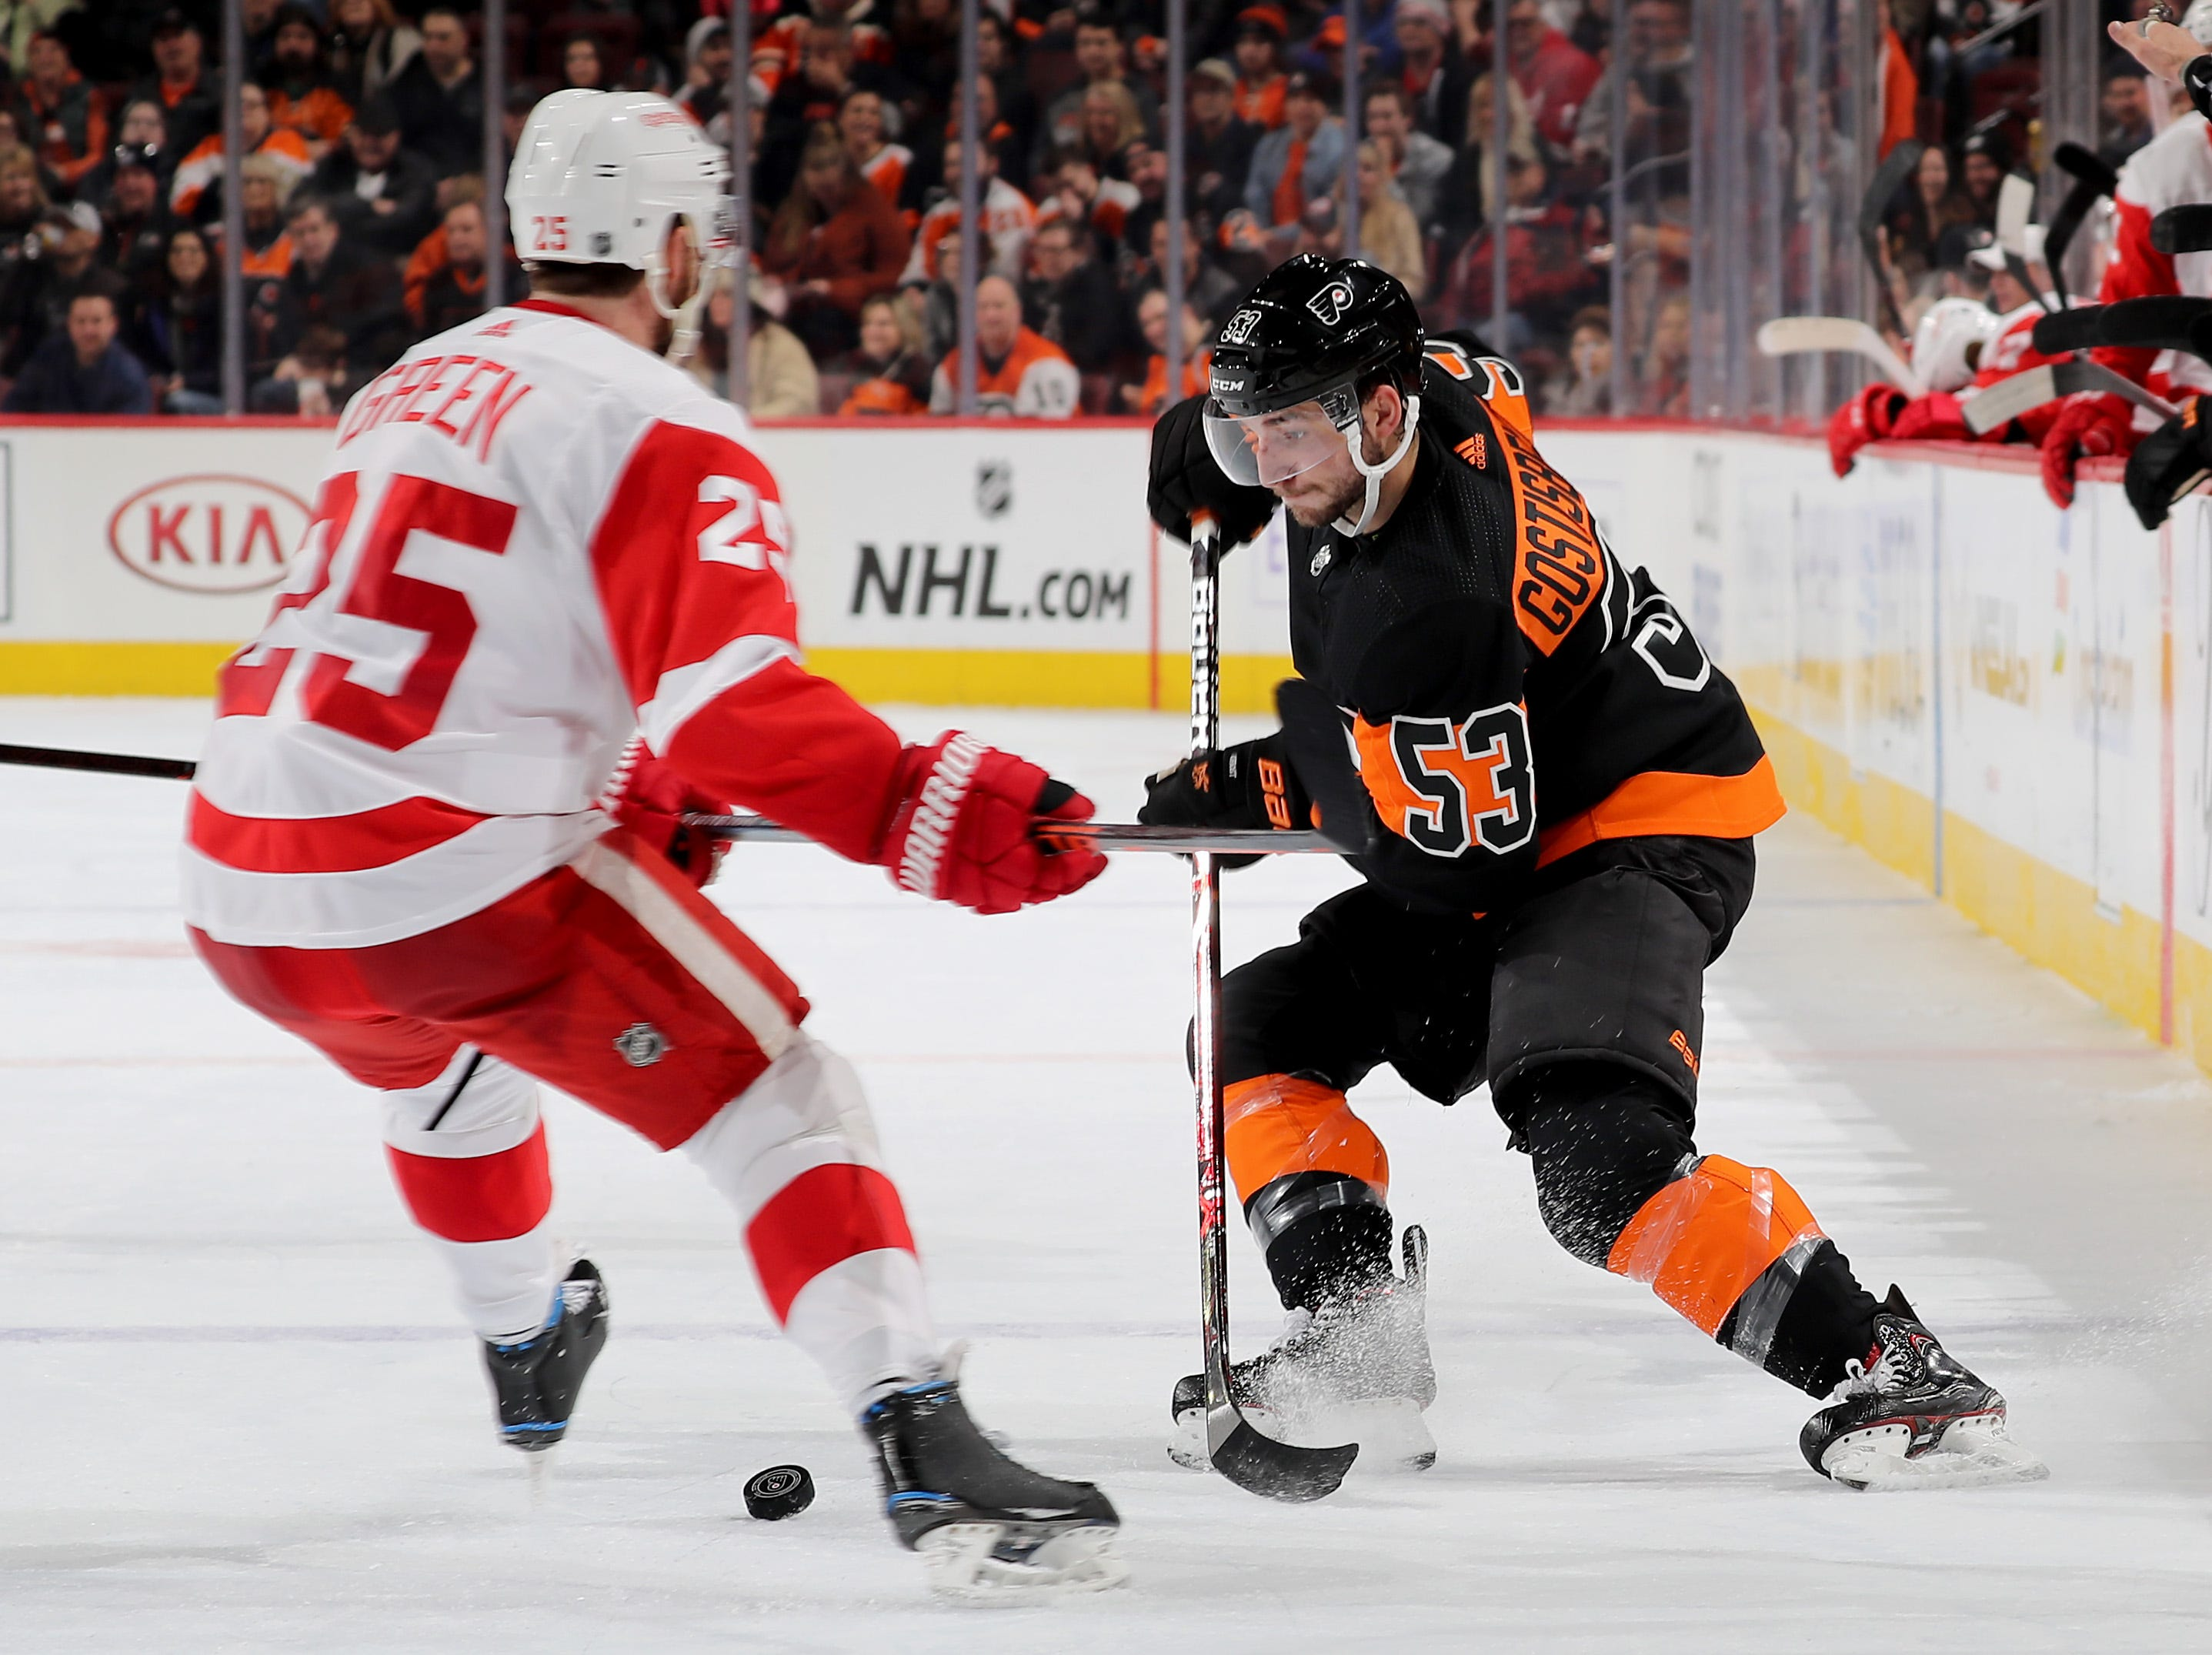 PHILADELPHIA, PENNSYLVANIA - FEBRUARY 16:   Shayne Gostisbehere #53 of the Philadelphia Flyers passes the puck as Mike Green #25 of the Detroit Red Wings defends at Wells Fargo Center on February 16, 2019 in Philadelphia, Pennsylvania. (Photo by Elsa/Getty Images)